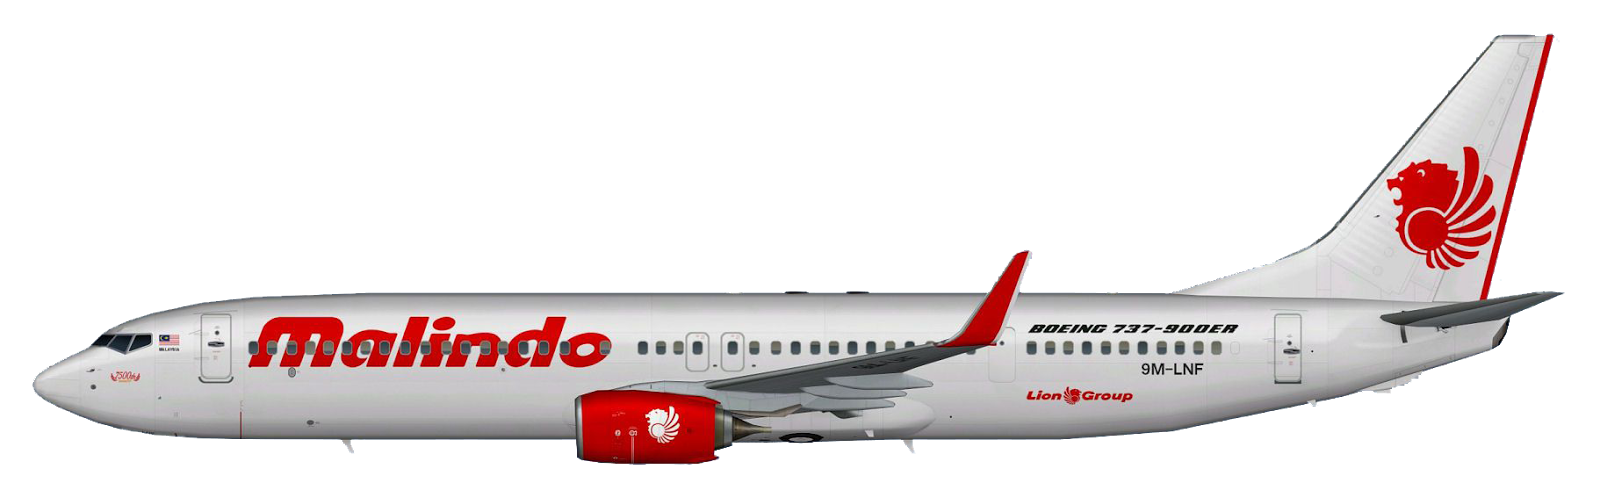 Air png image. Malindo logo transparent images